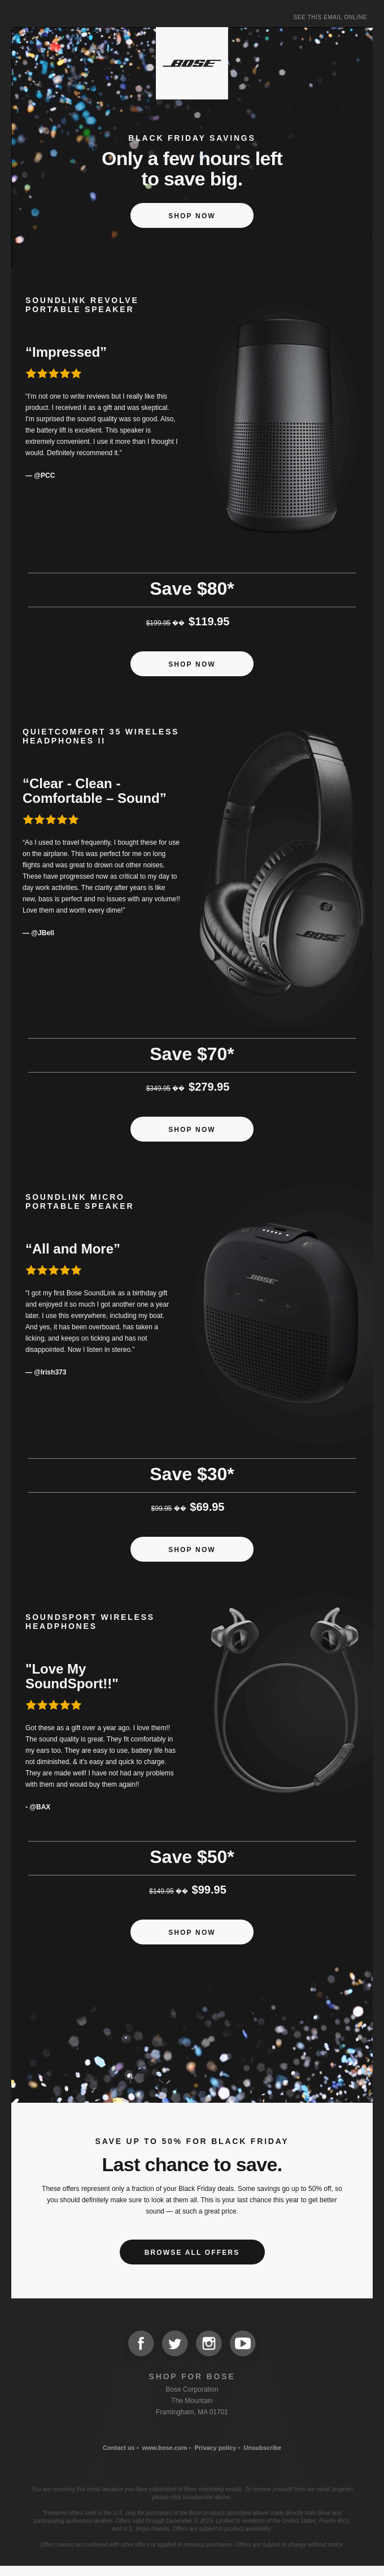 Black Friday email with reviews from Bose.